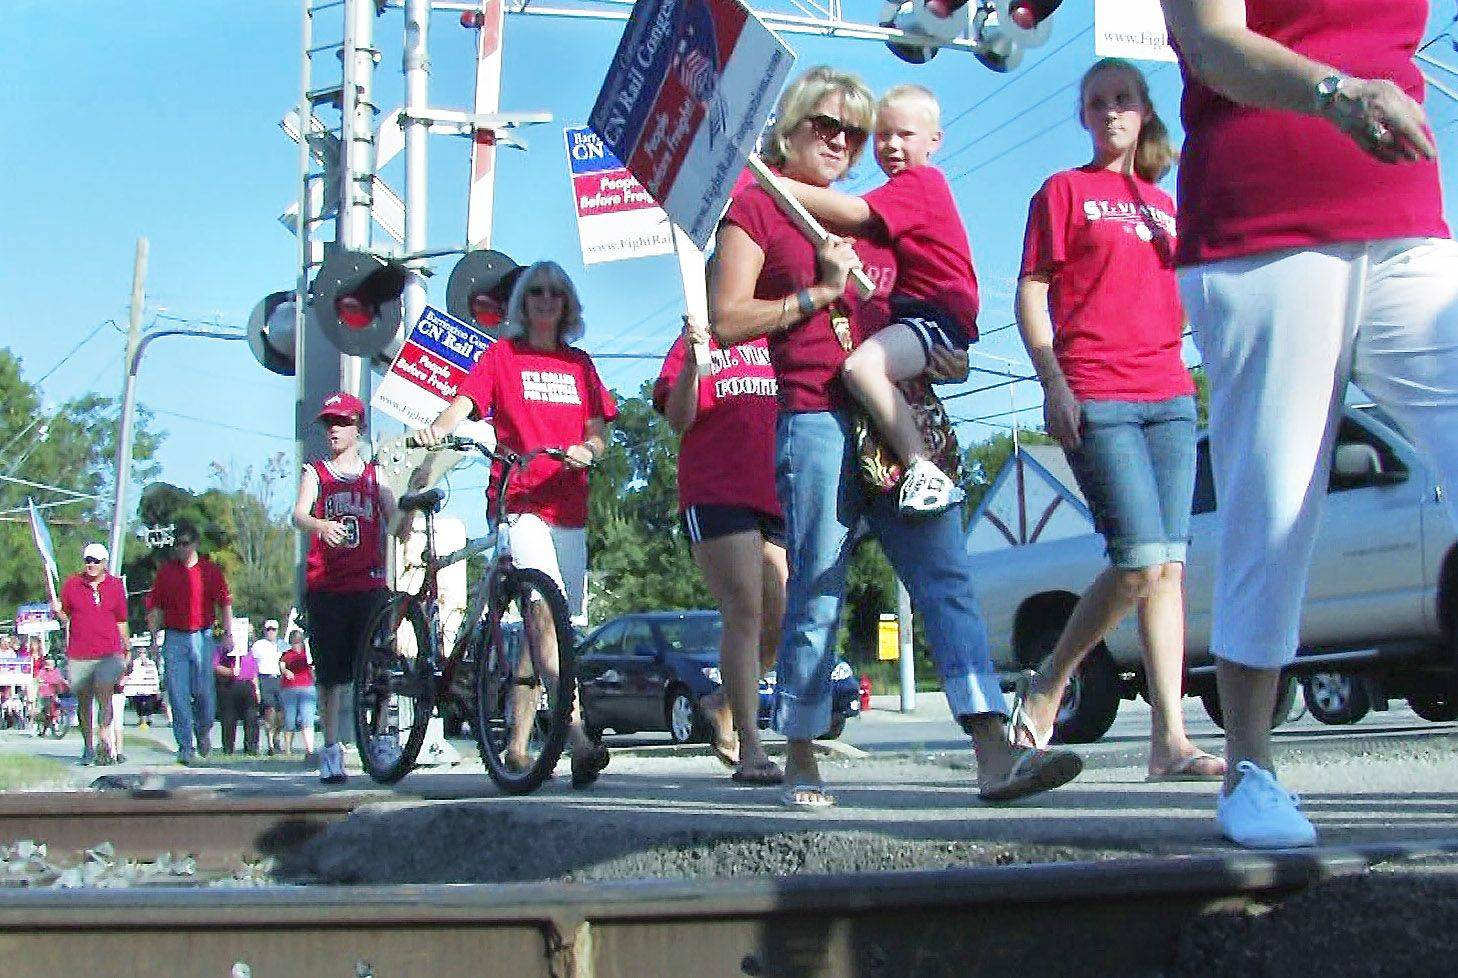 Protesters of Canadian National Railway's purchase of the Elgin, Joliet & Eastern Ry. march to a Surface Transportation Board hearing at Barrington High School in August 2008.